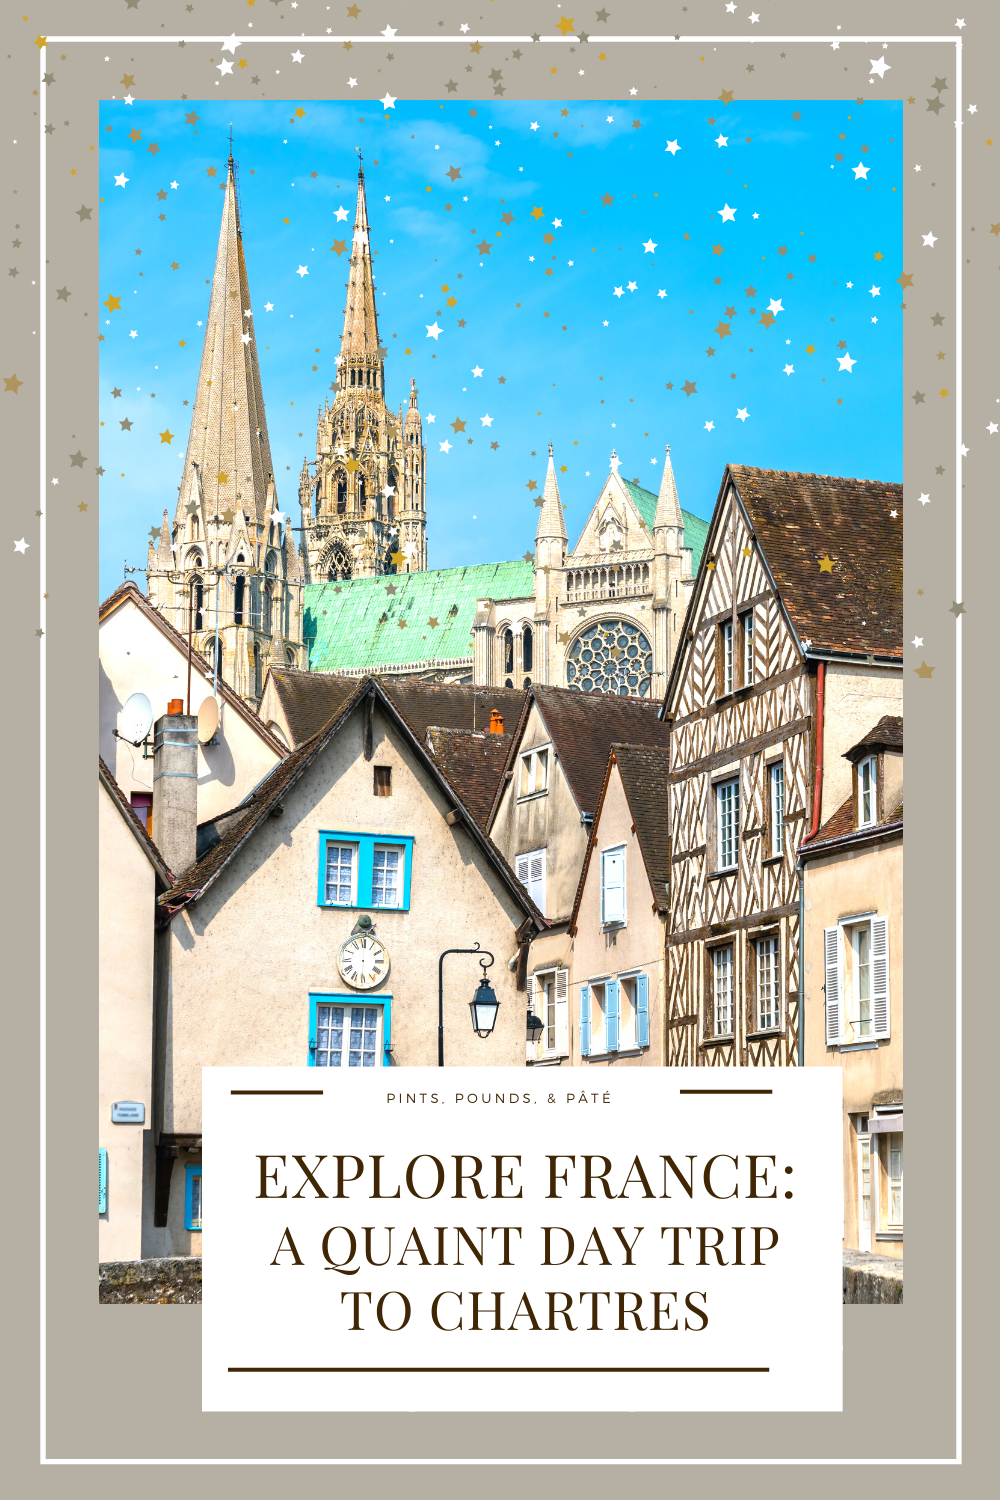 A day trip from Paris to Chartres